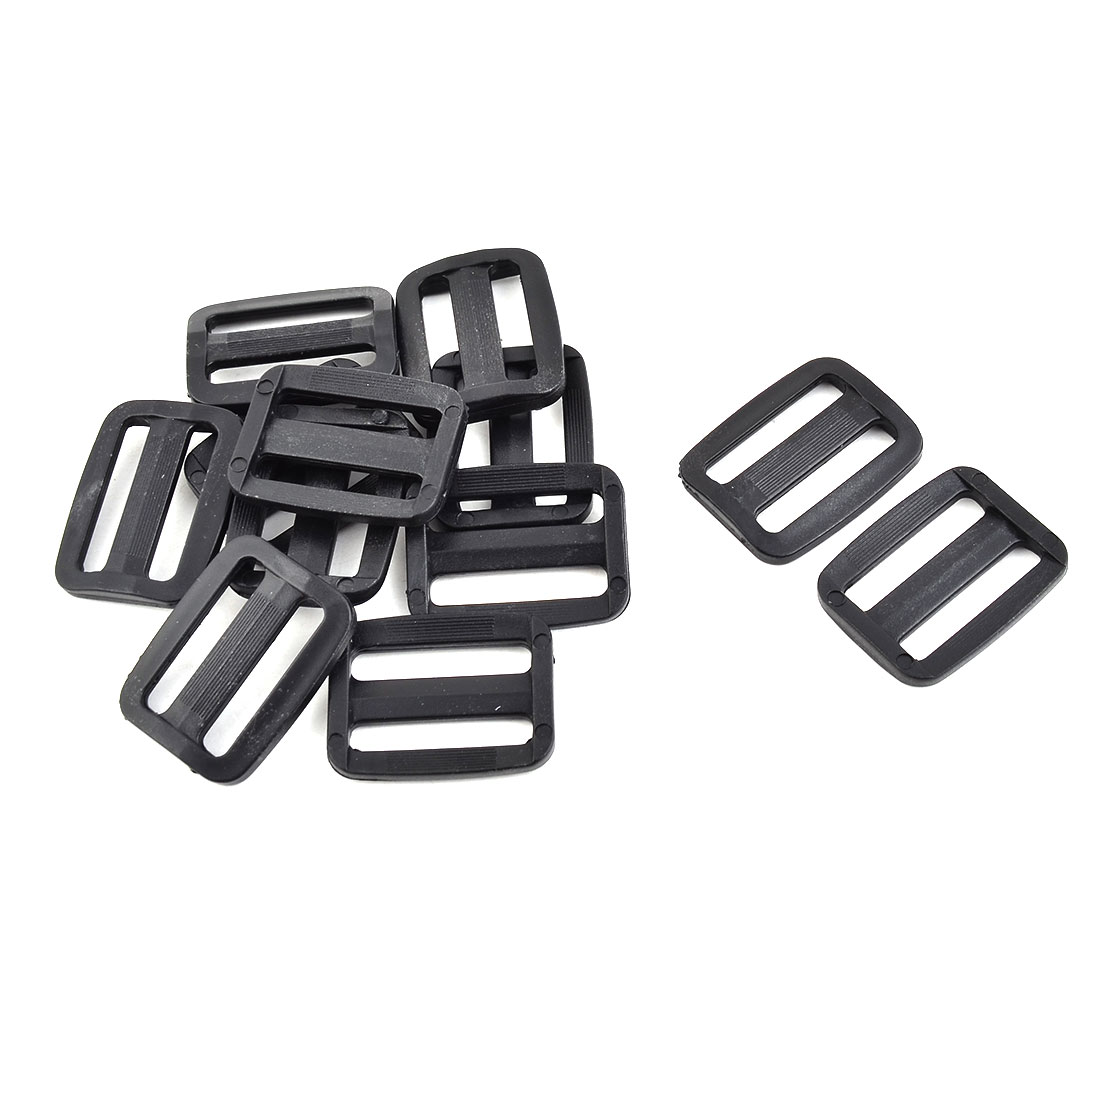 Camping Plastic Adjustive Rectangle Luggage Bag Connecting Tri Glide Fastener Buckle 12pcs